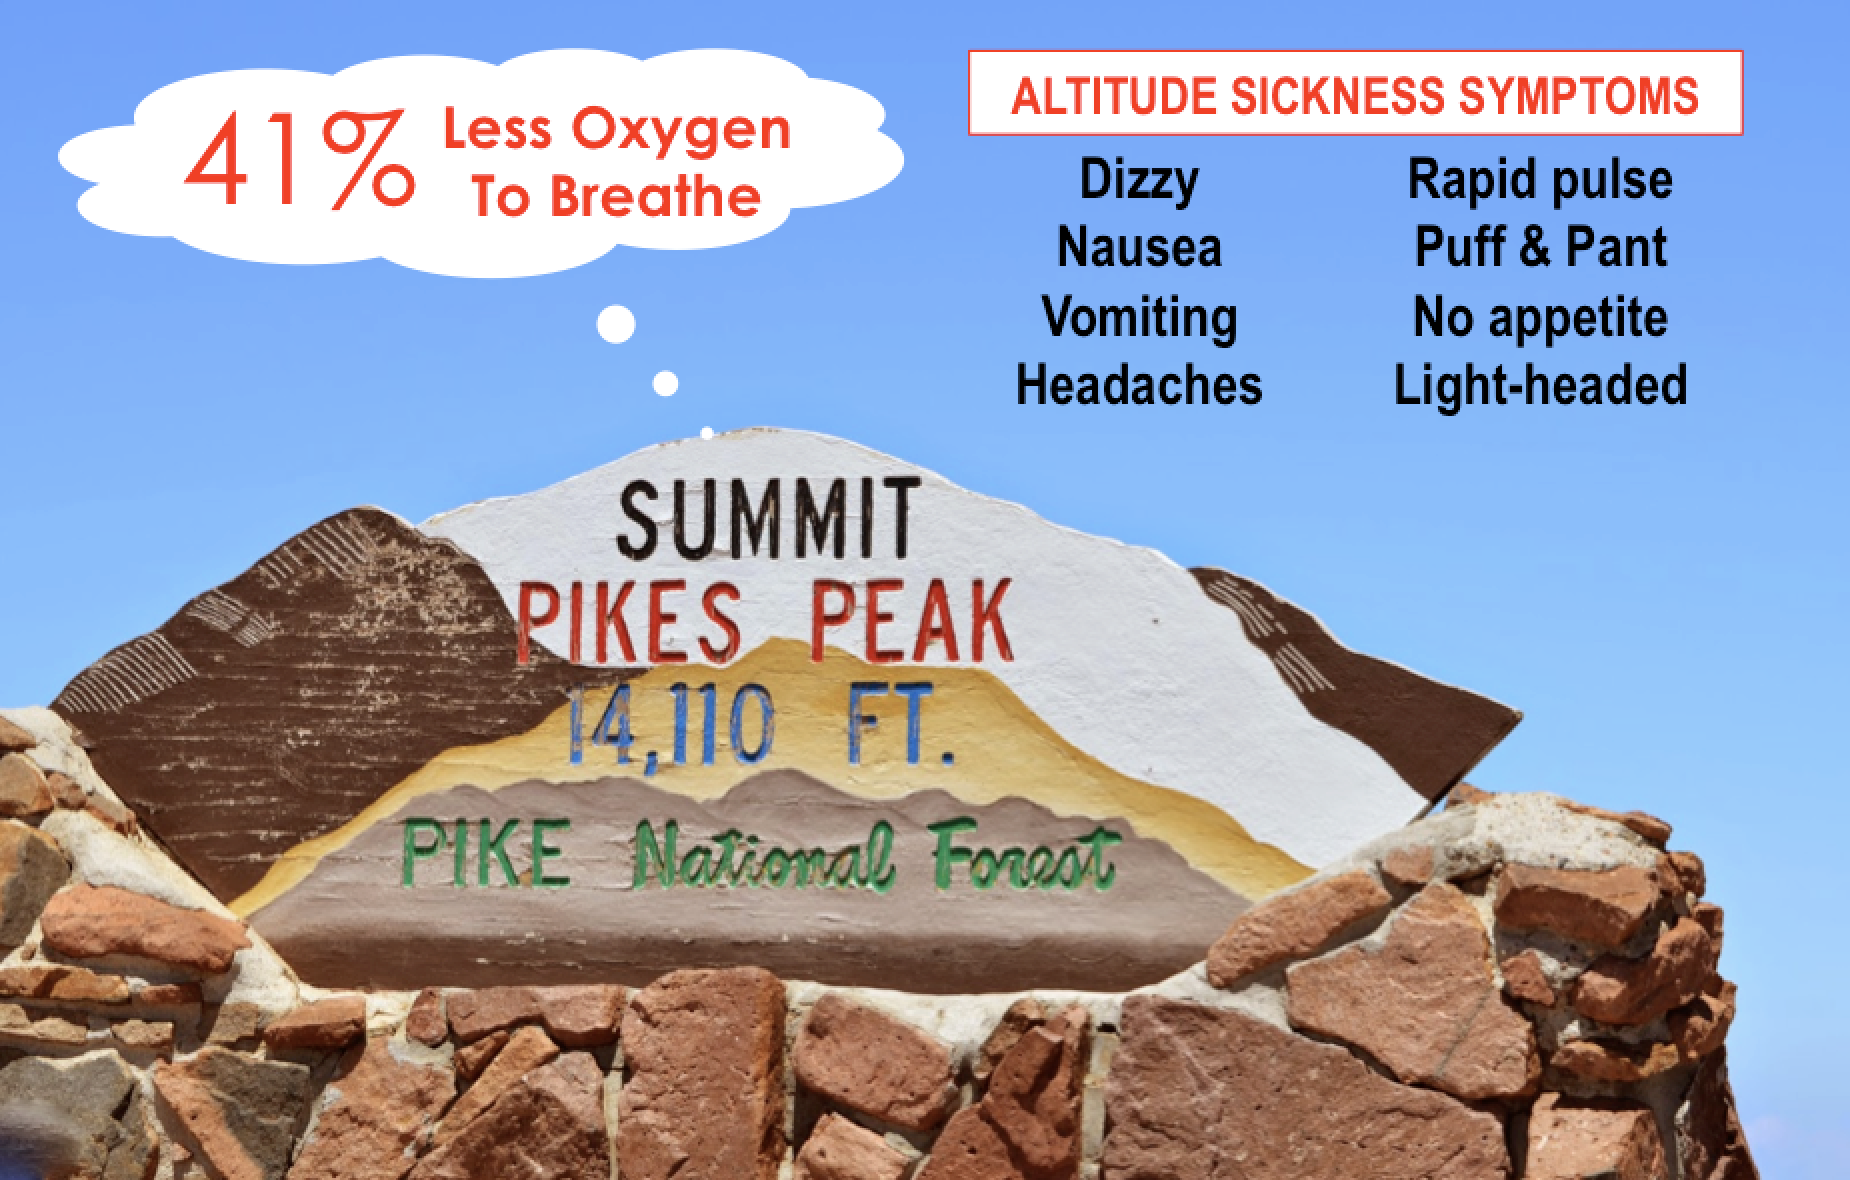 Here S How Alude Sickness Affected Jill Parker In The 2017 Pikes Peak Marathon